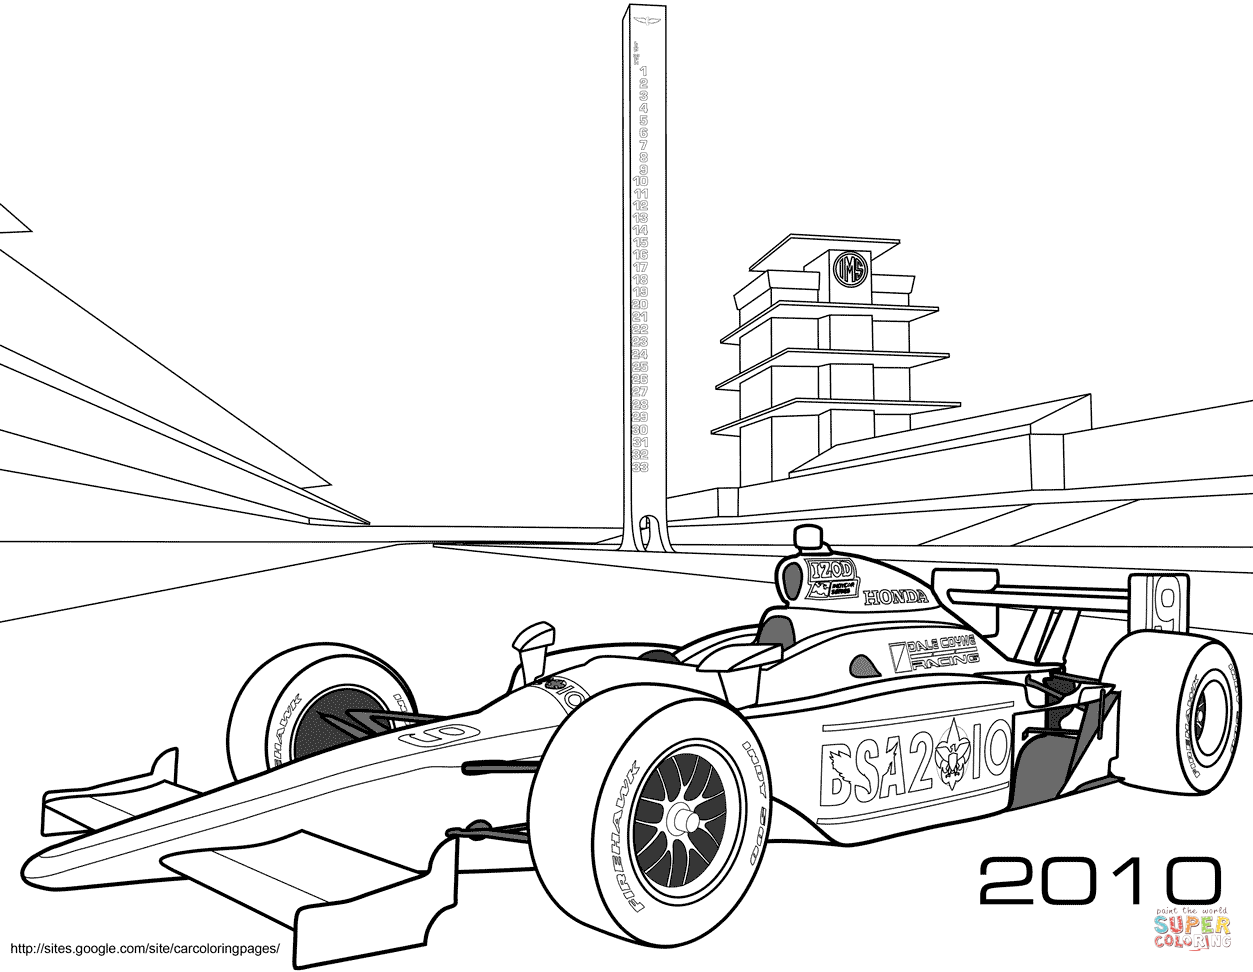 Indy Race Car Coloring Page